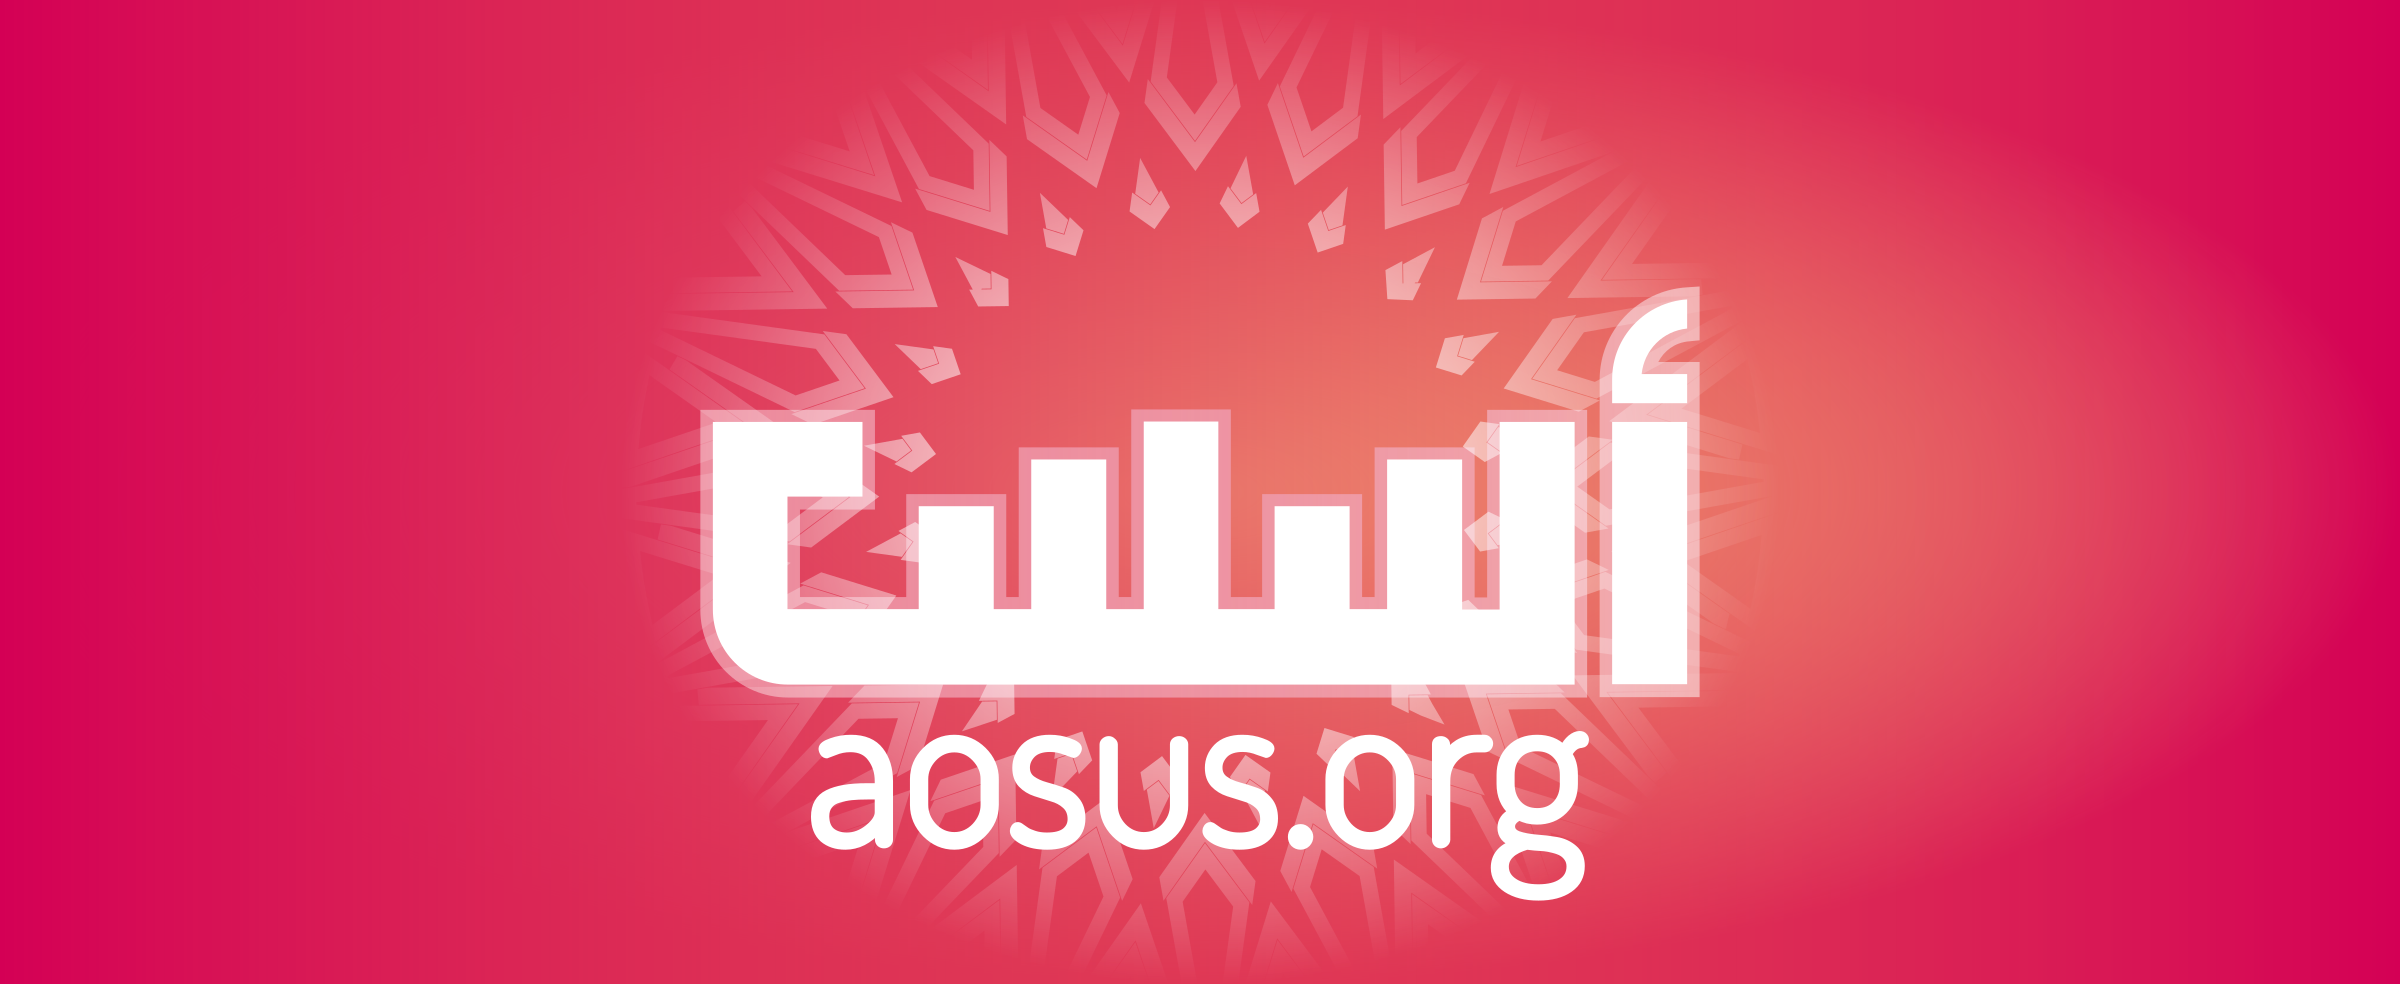 aosus.org facebook cover clipart by QMC.media